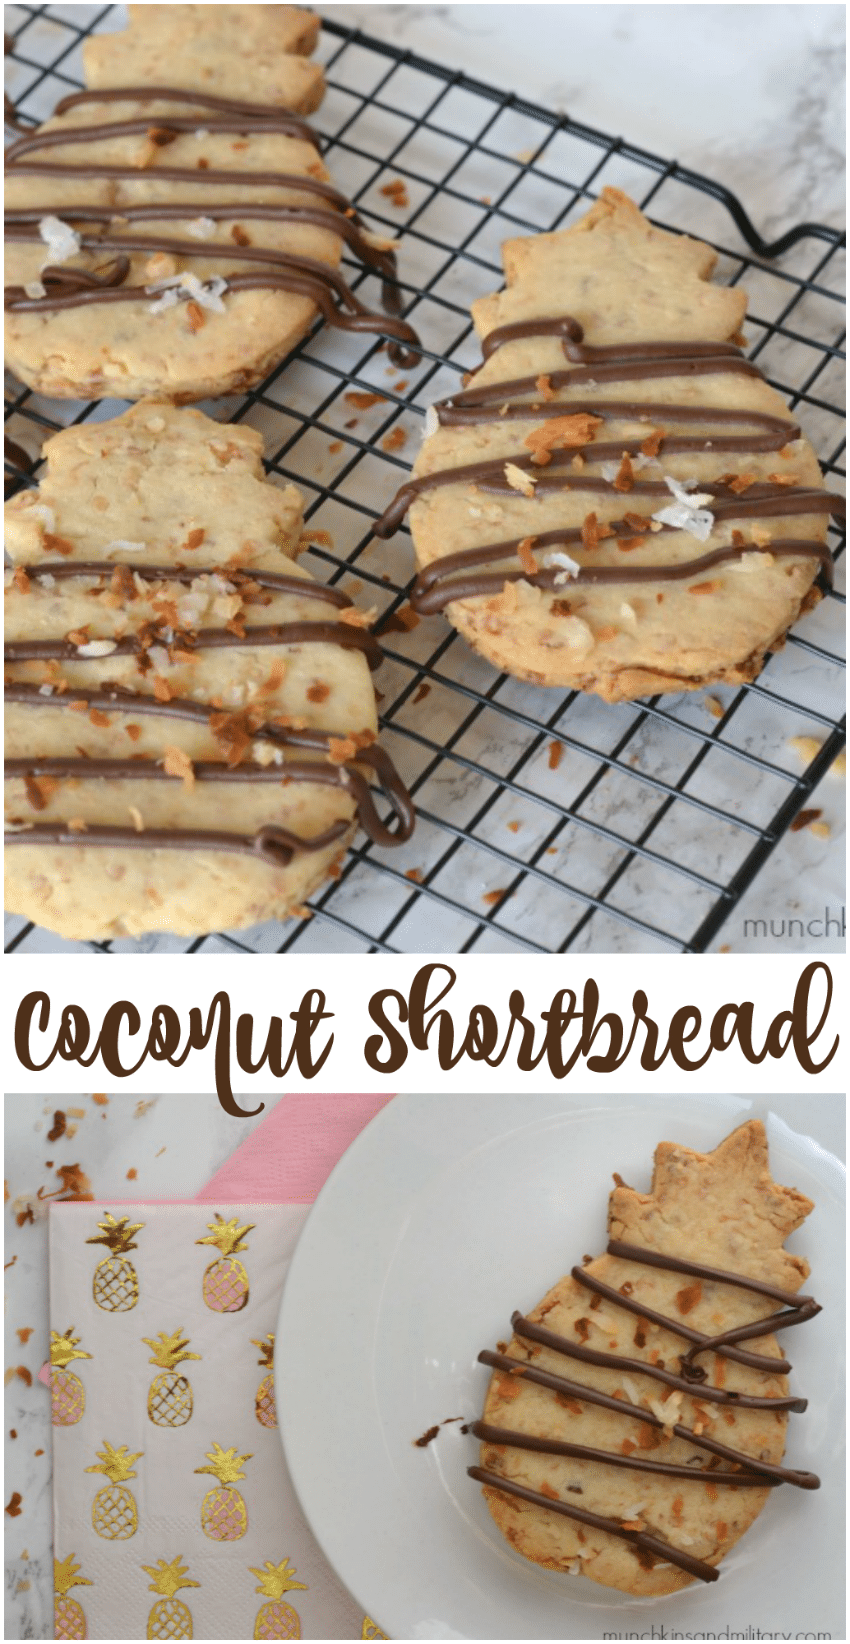 Coconut shortbread cookies in the shape of pineapples!